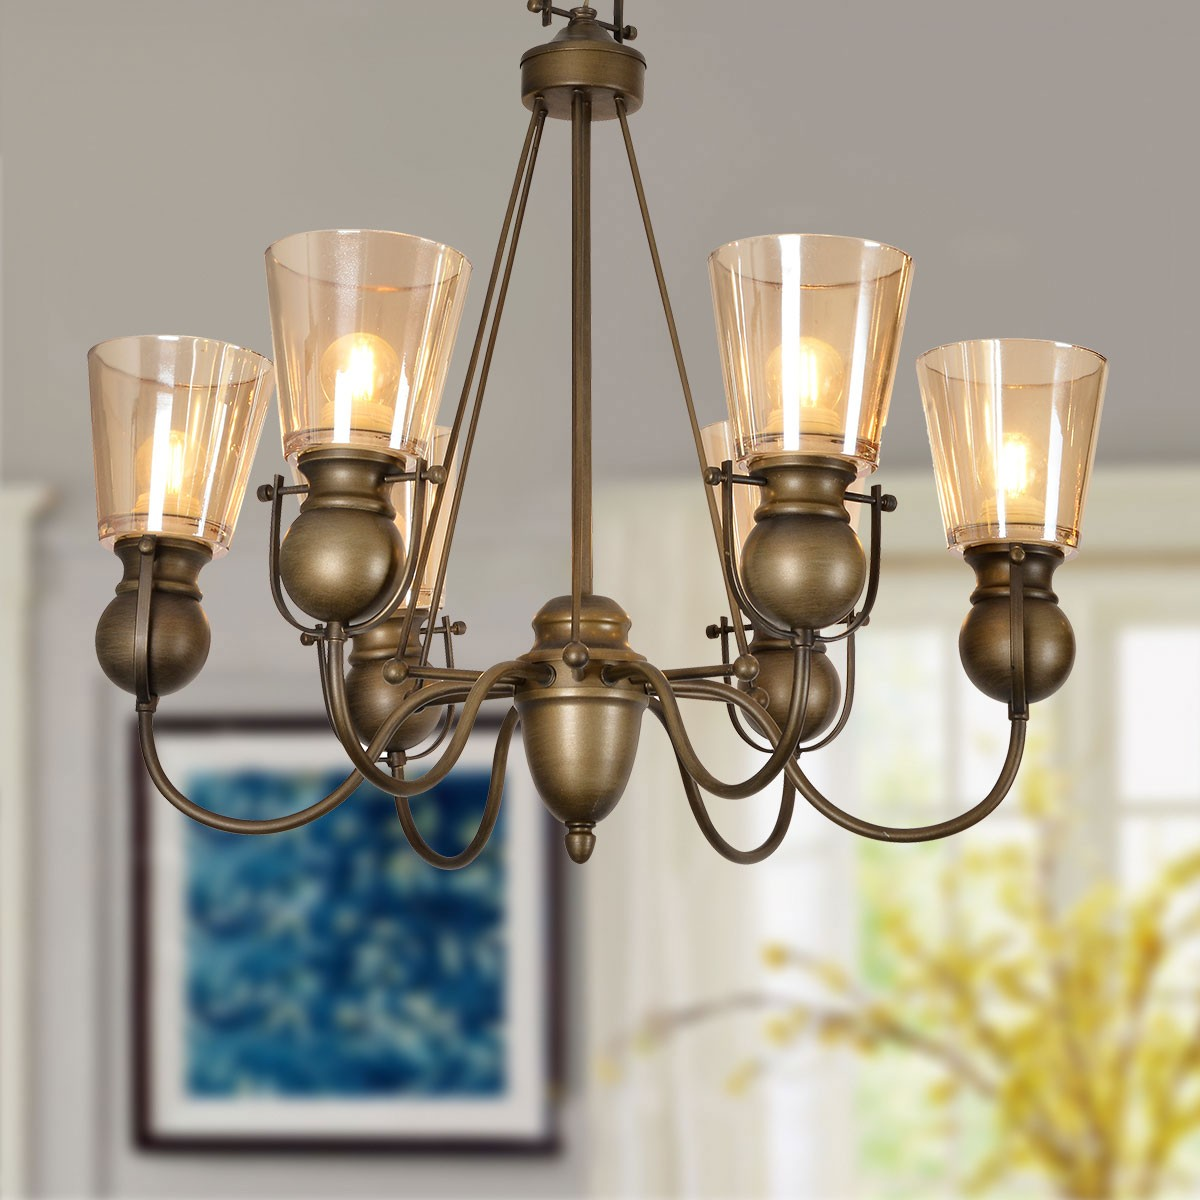 6 Light Copper Iron Modern Chandelier With Glass Shades Hkp31252